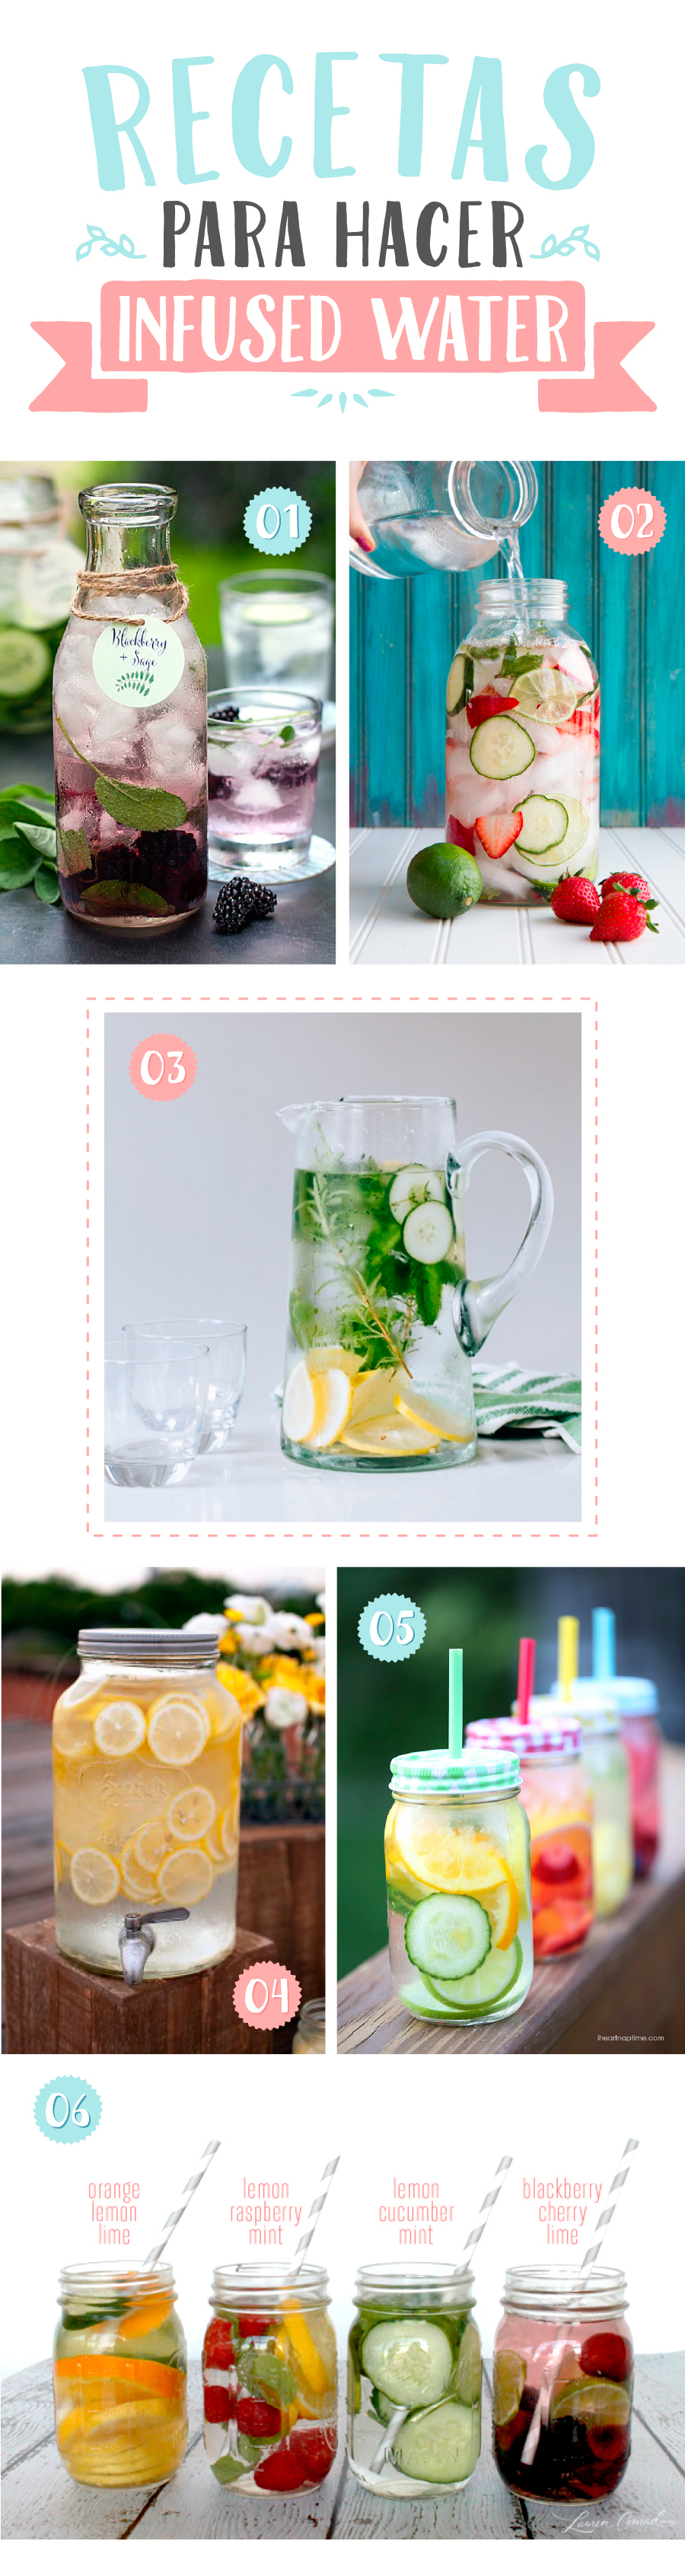 post-infused-water-parte-1